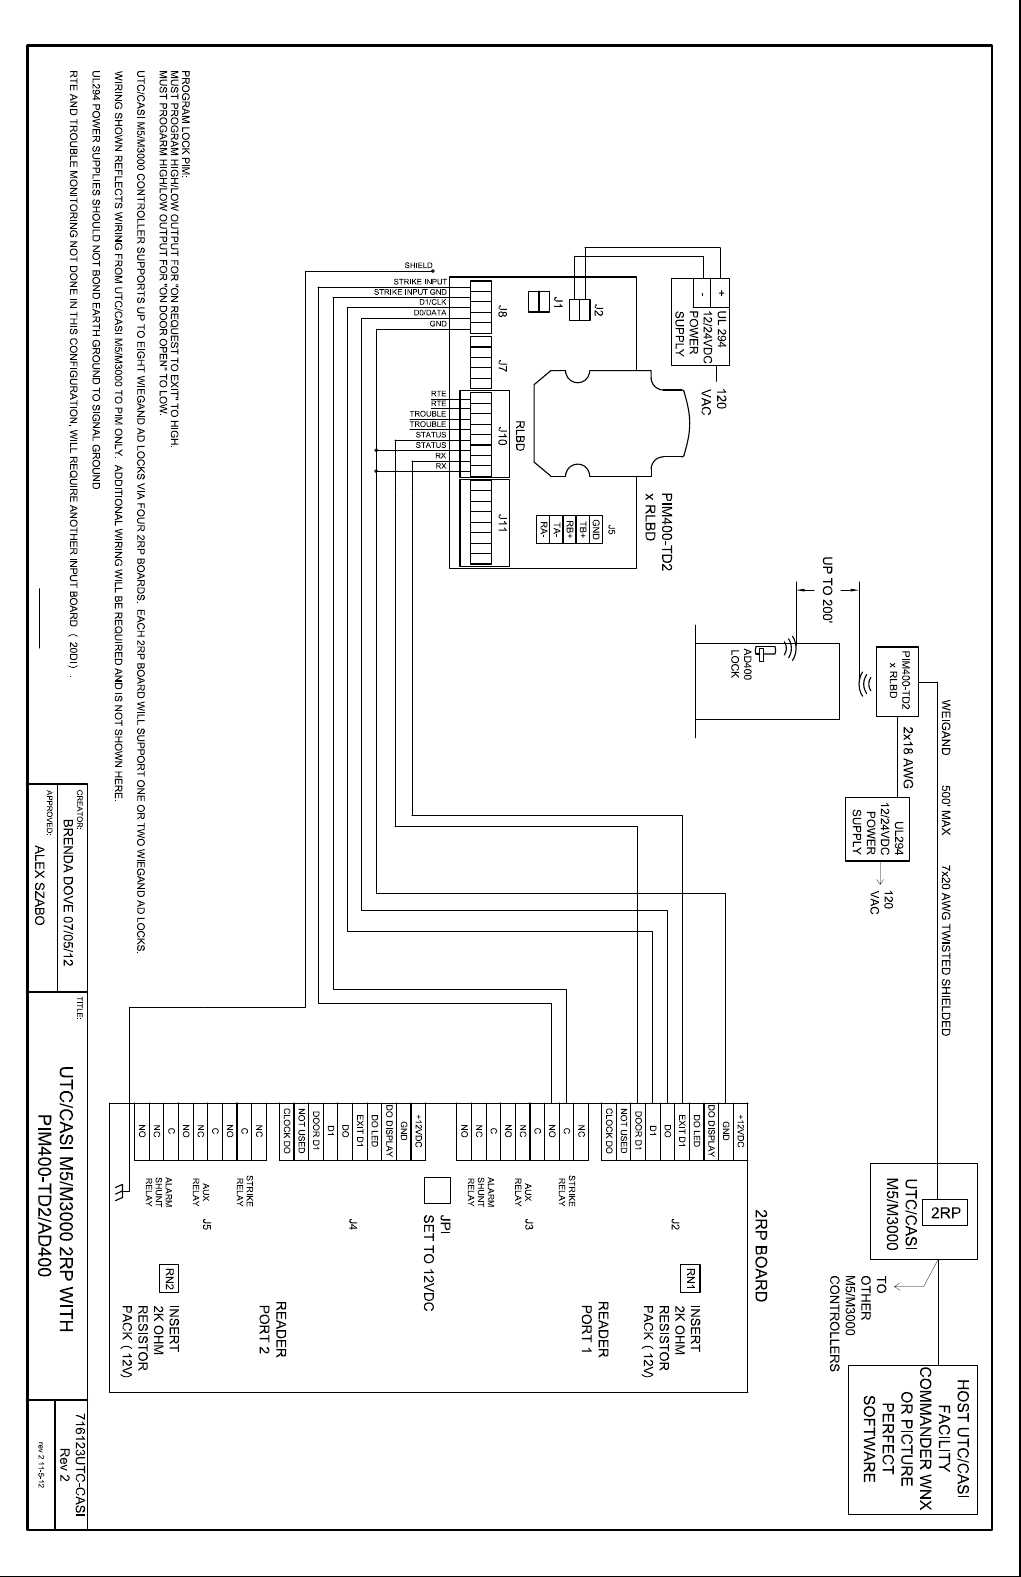 Schlage Electronics C Ad400 Wiring Diagram Utc Casi M5 M3000 2rp Wiegand 109176